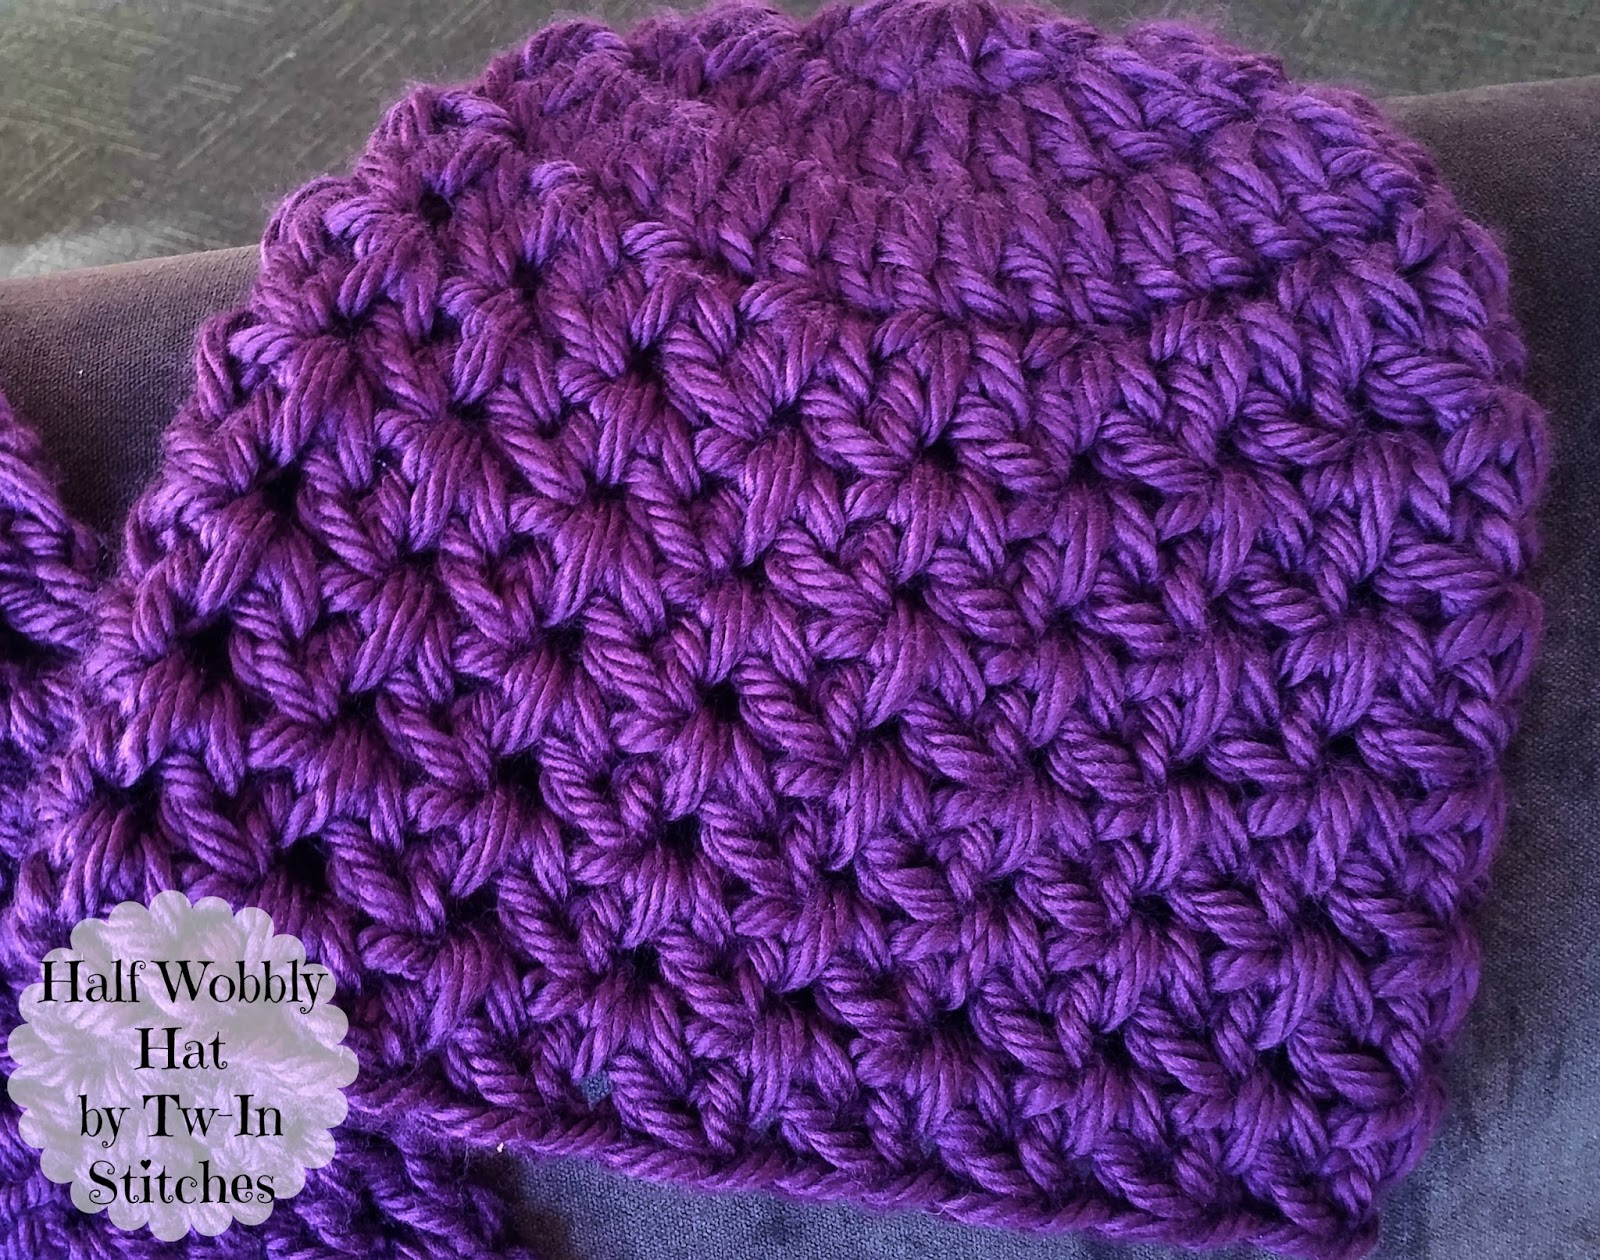 Tw In Stitches Sophies Half Wobbly Hat And Scarf Free Pattern